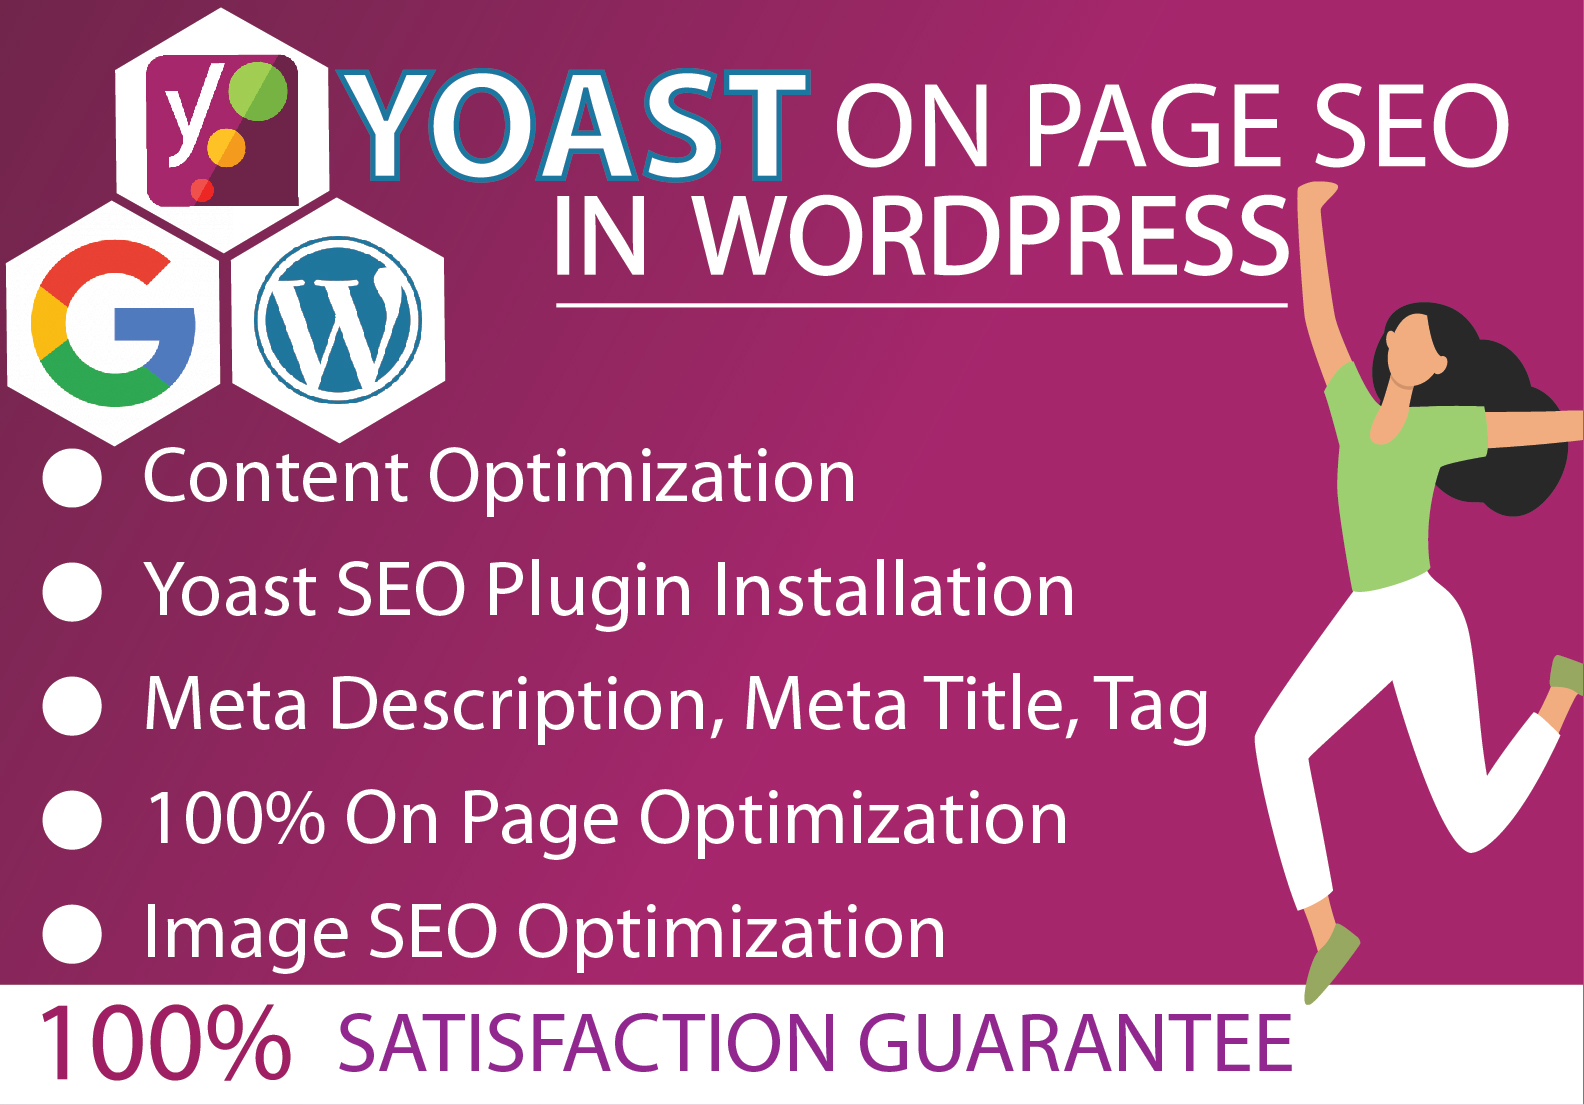 Will setup and install WordPress Yoast SEO and provide On Page SEO